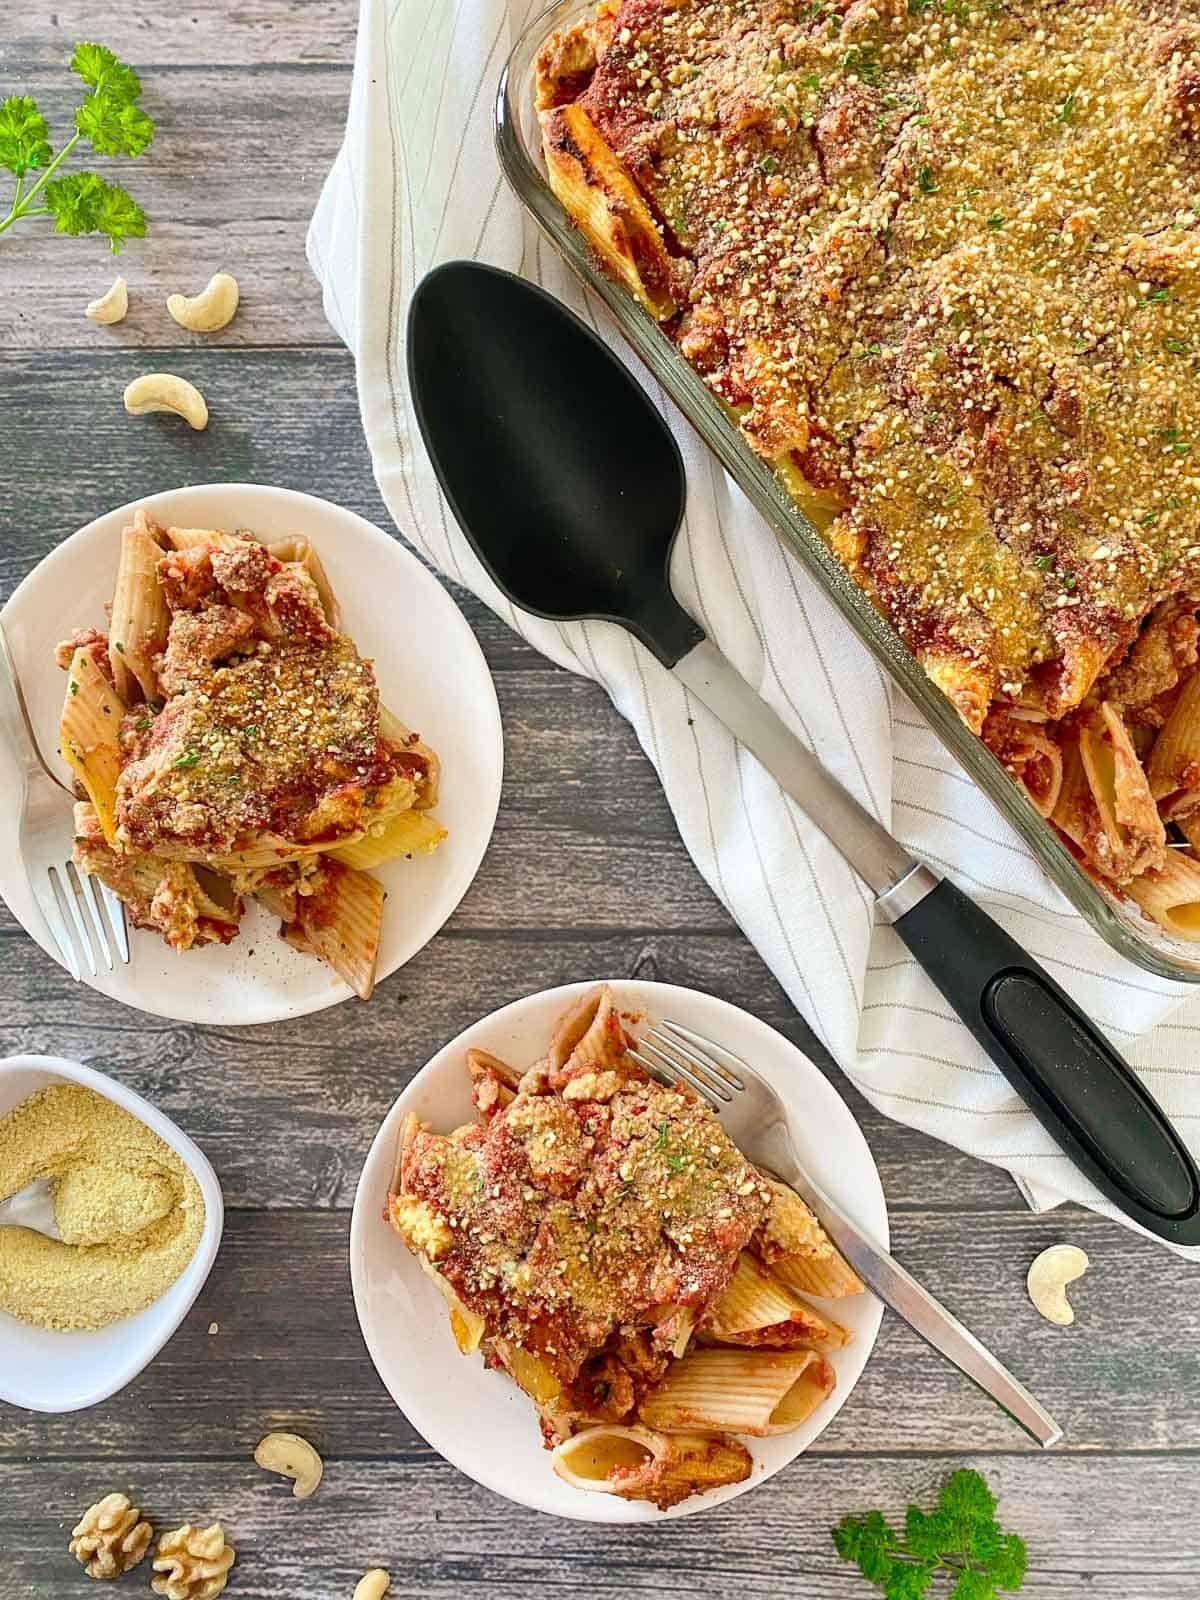 Two plates with baked pasta and the tray of baked pasta beside them.